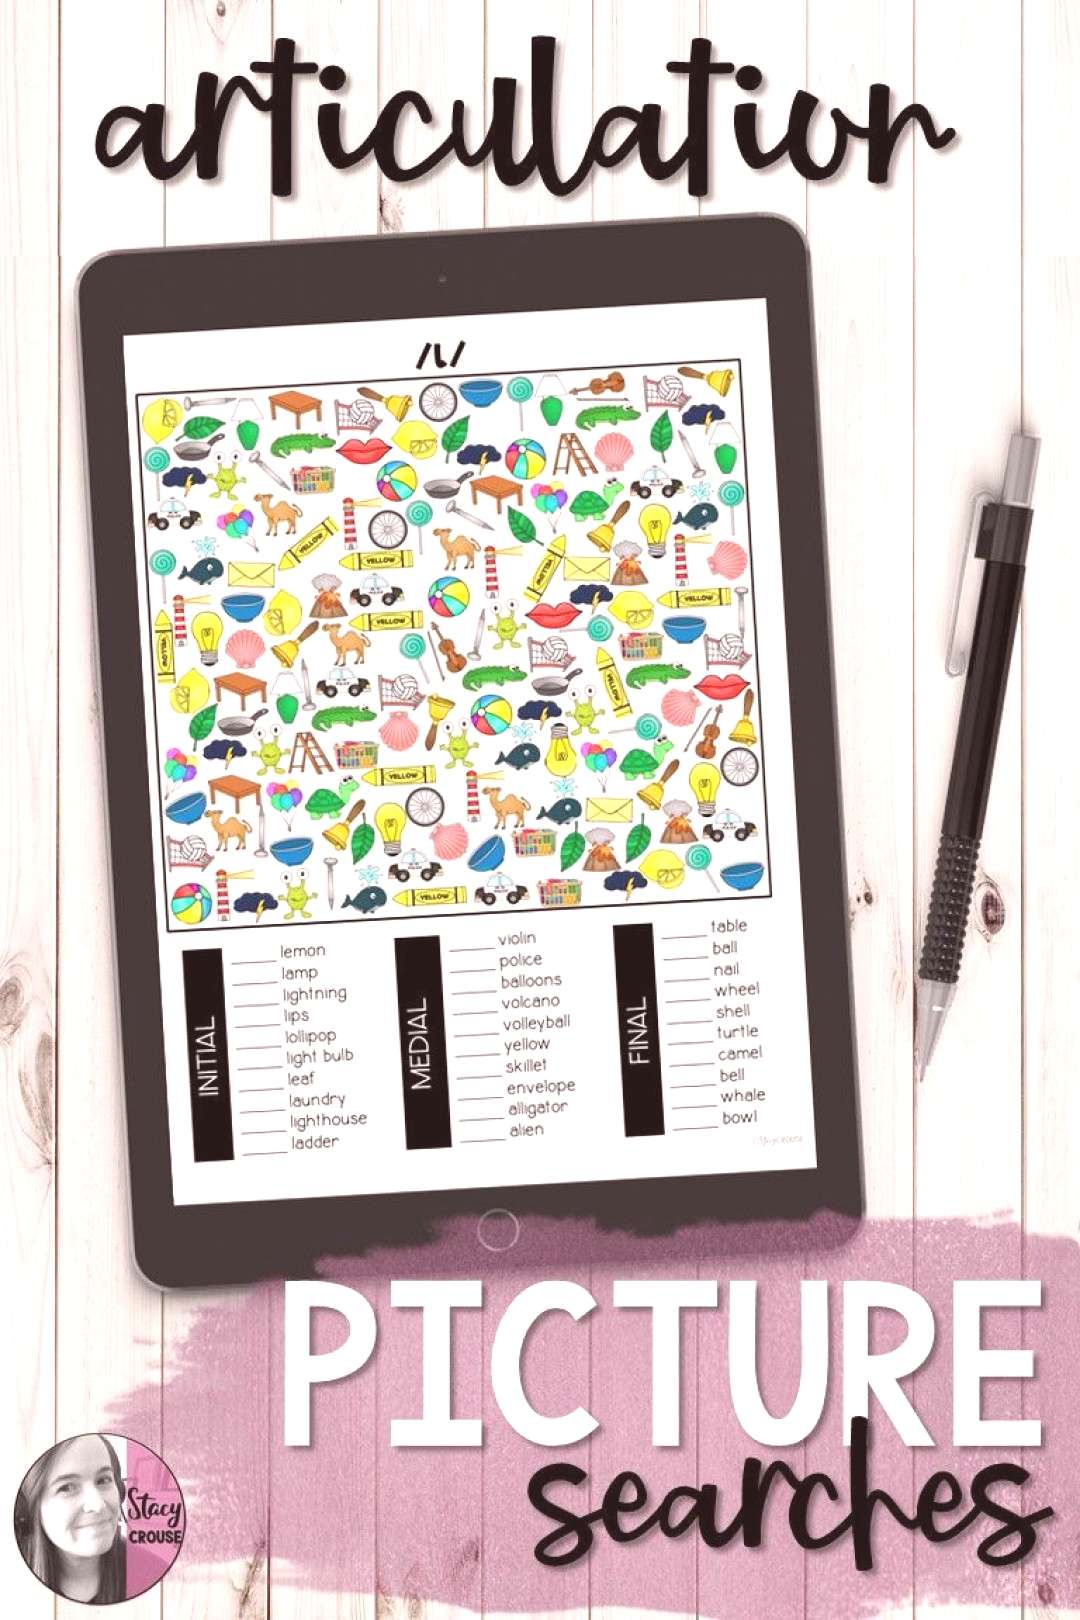 I Spot Articulation Picture Searches Need a simple and NO PRINT activity for speech therapy? This e